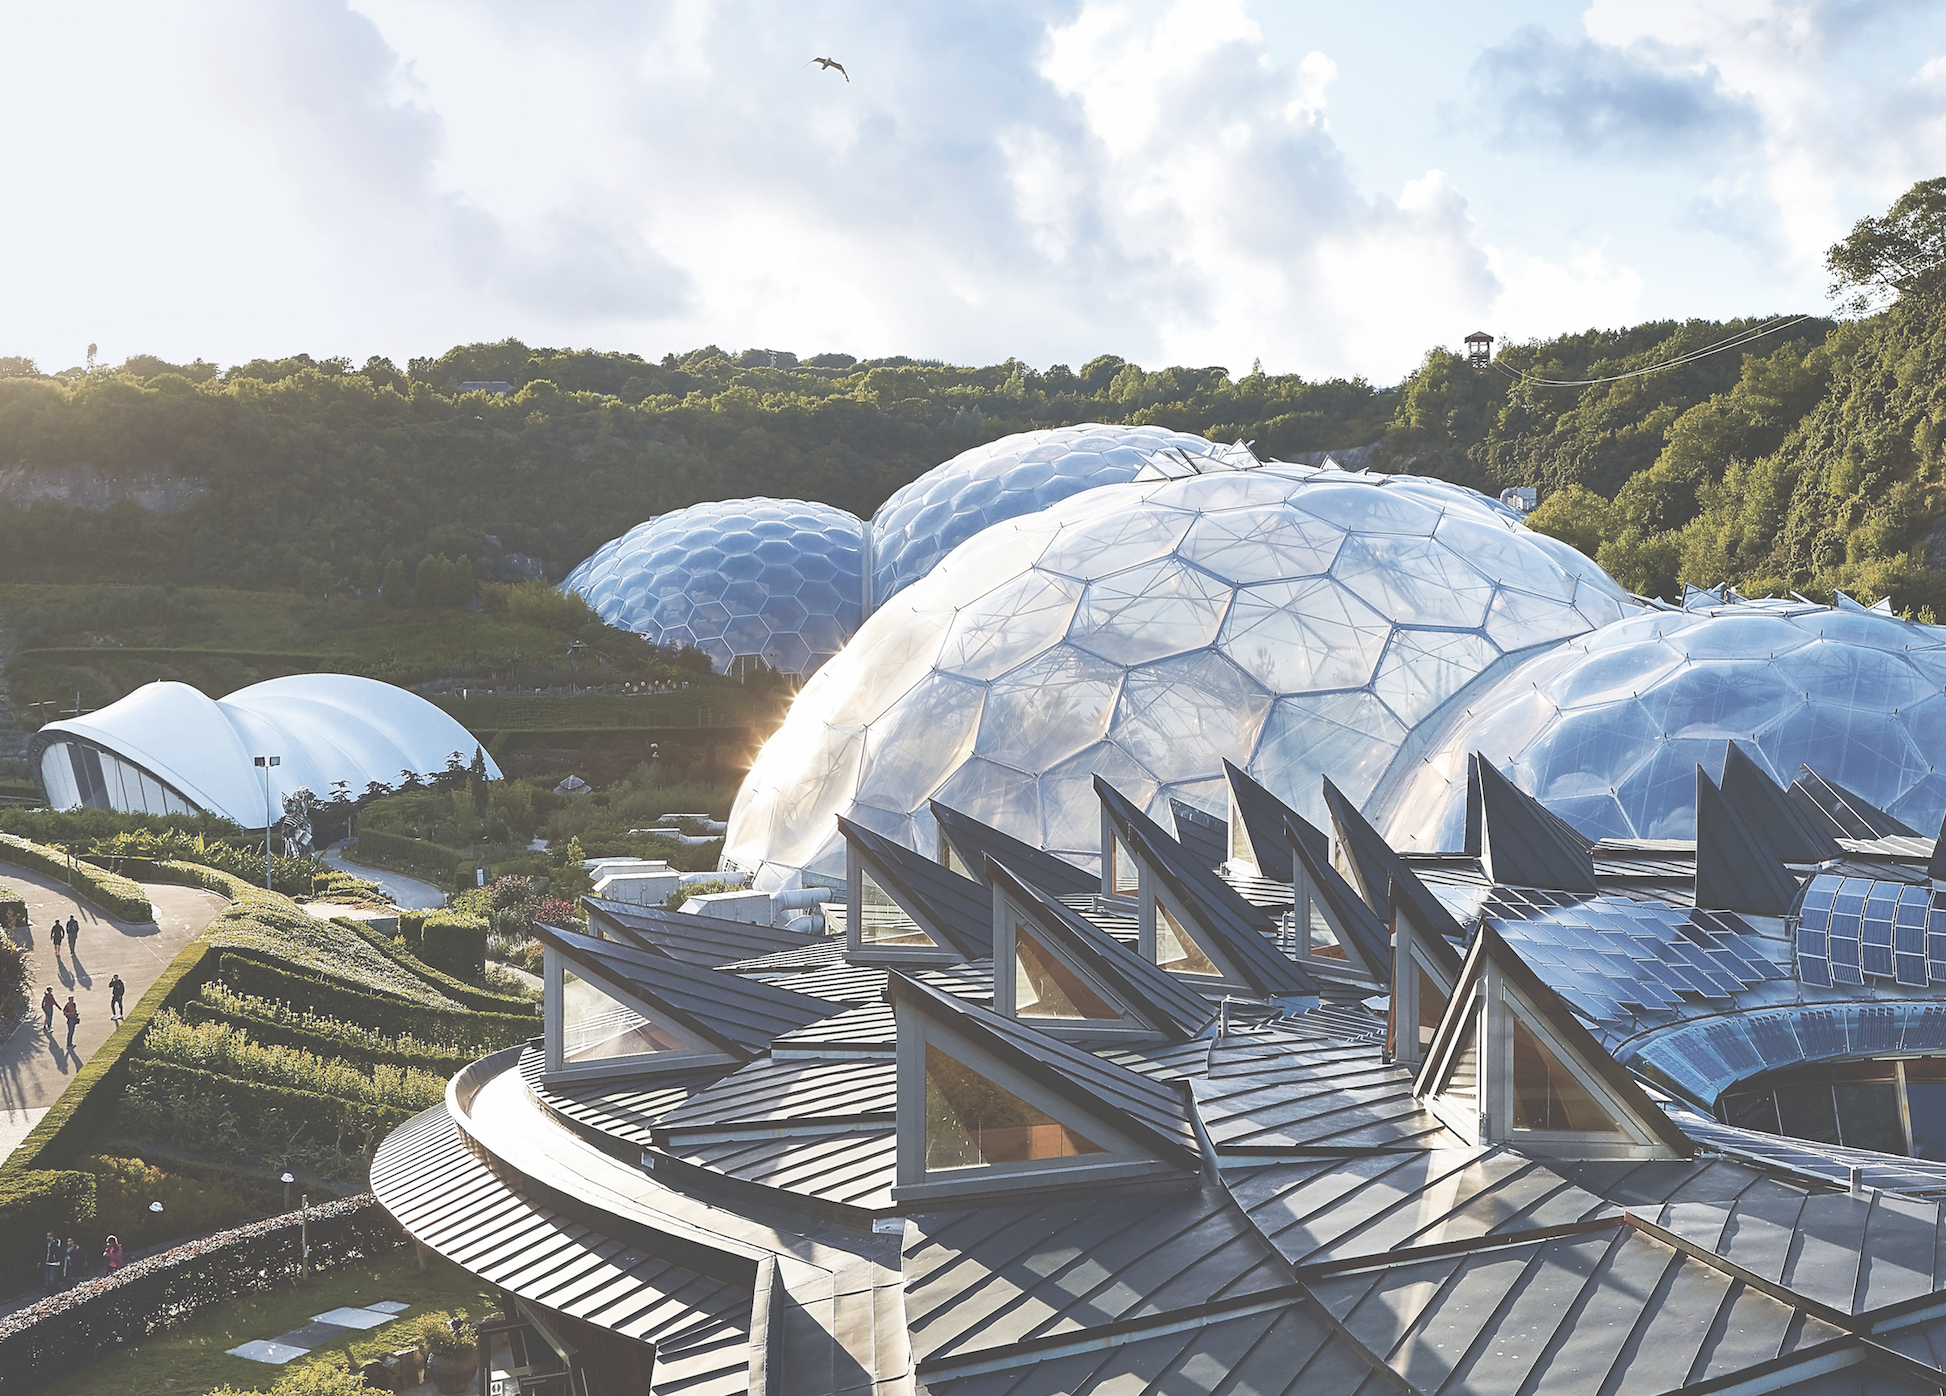 Landscape of eight interlinked geodesic dome structures